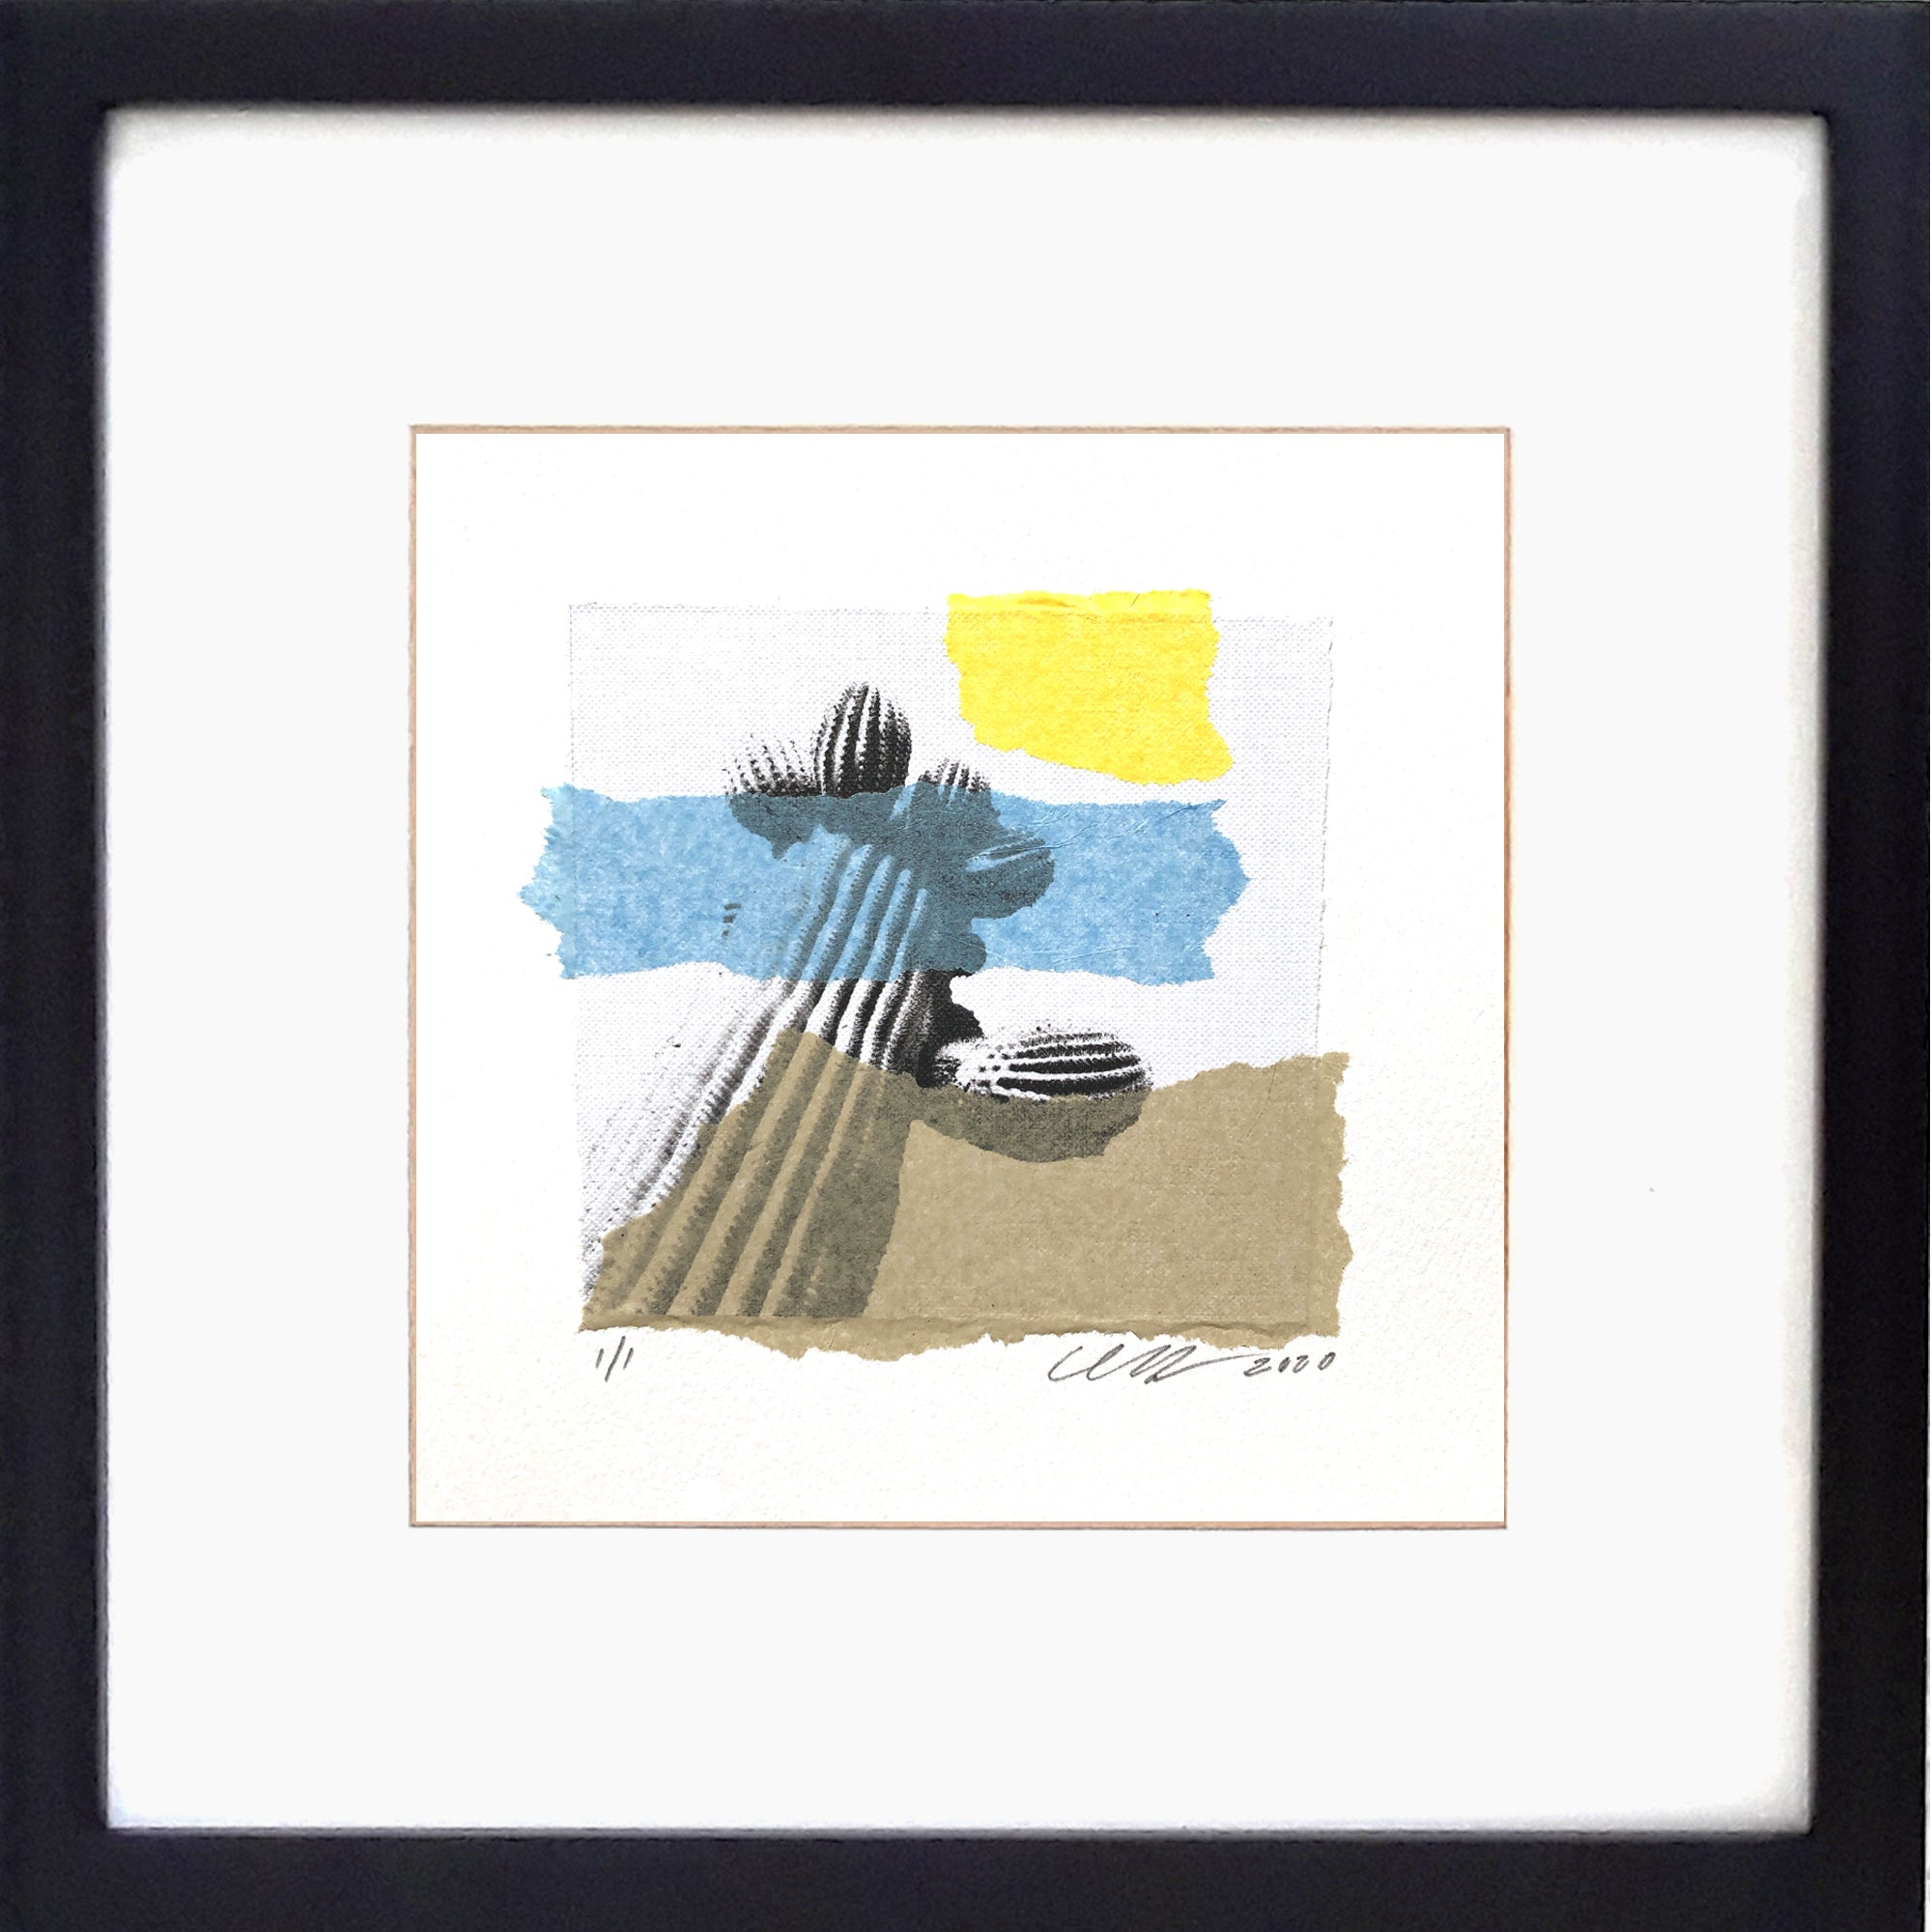 "Ols Soul collage features an ancient saguaro castus with numerous arms. 12"" x 12"" Framed."